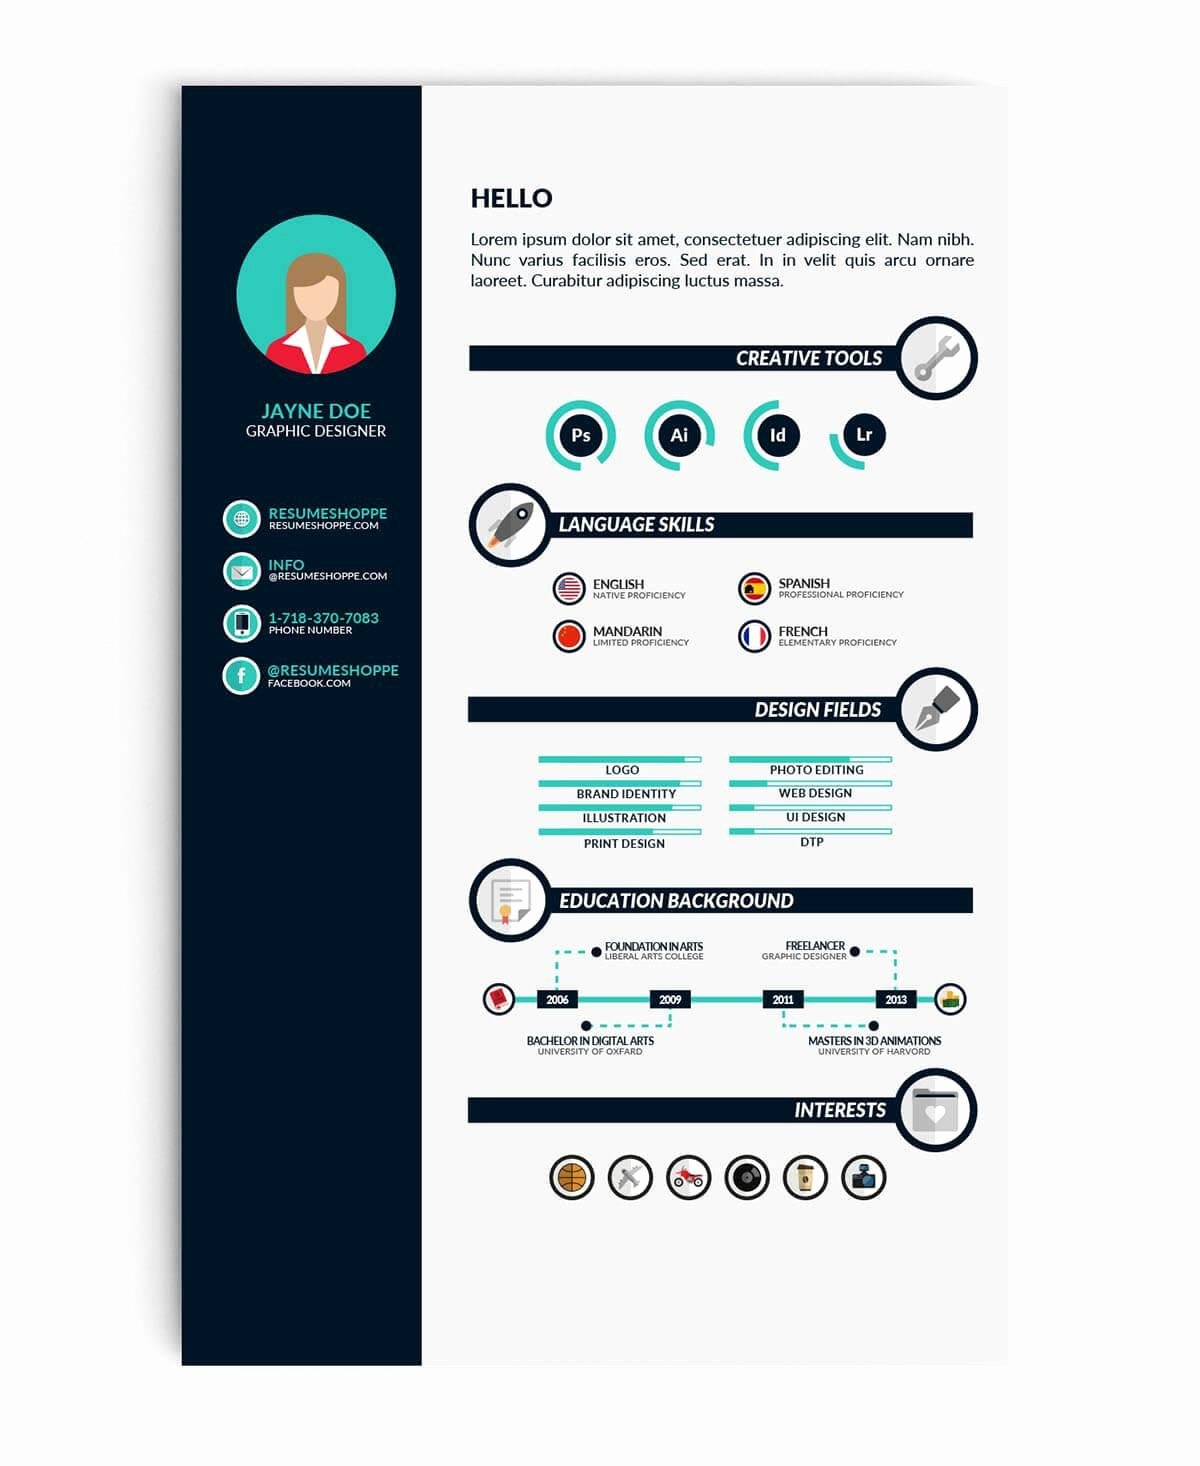 Infographic Resume Template Word Inspirational Student Resume Cv Templates 15 Examples to Download & Use now